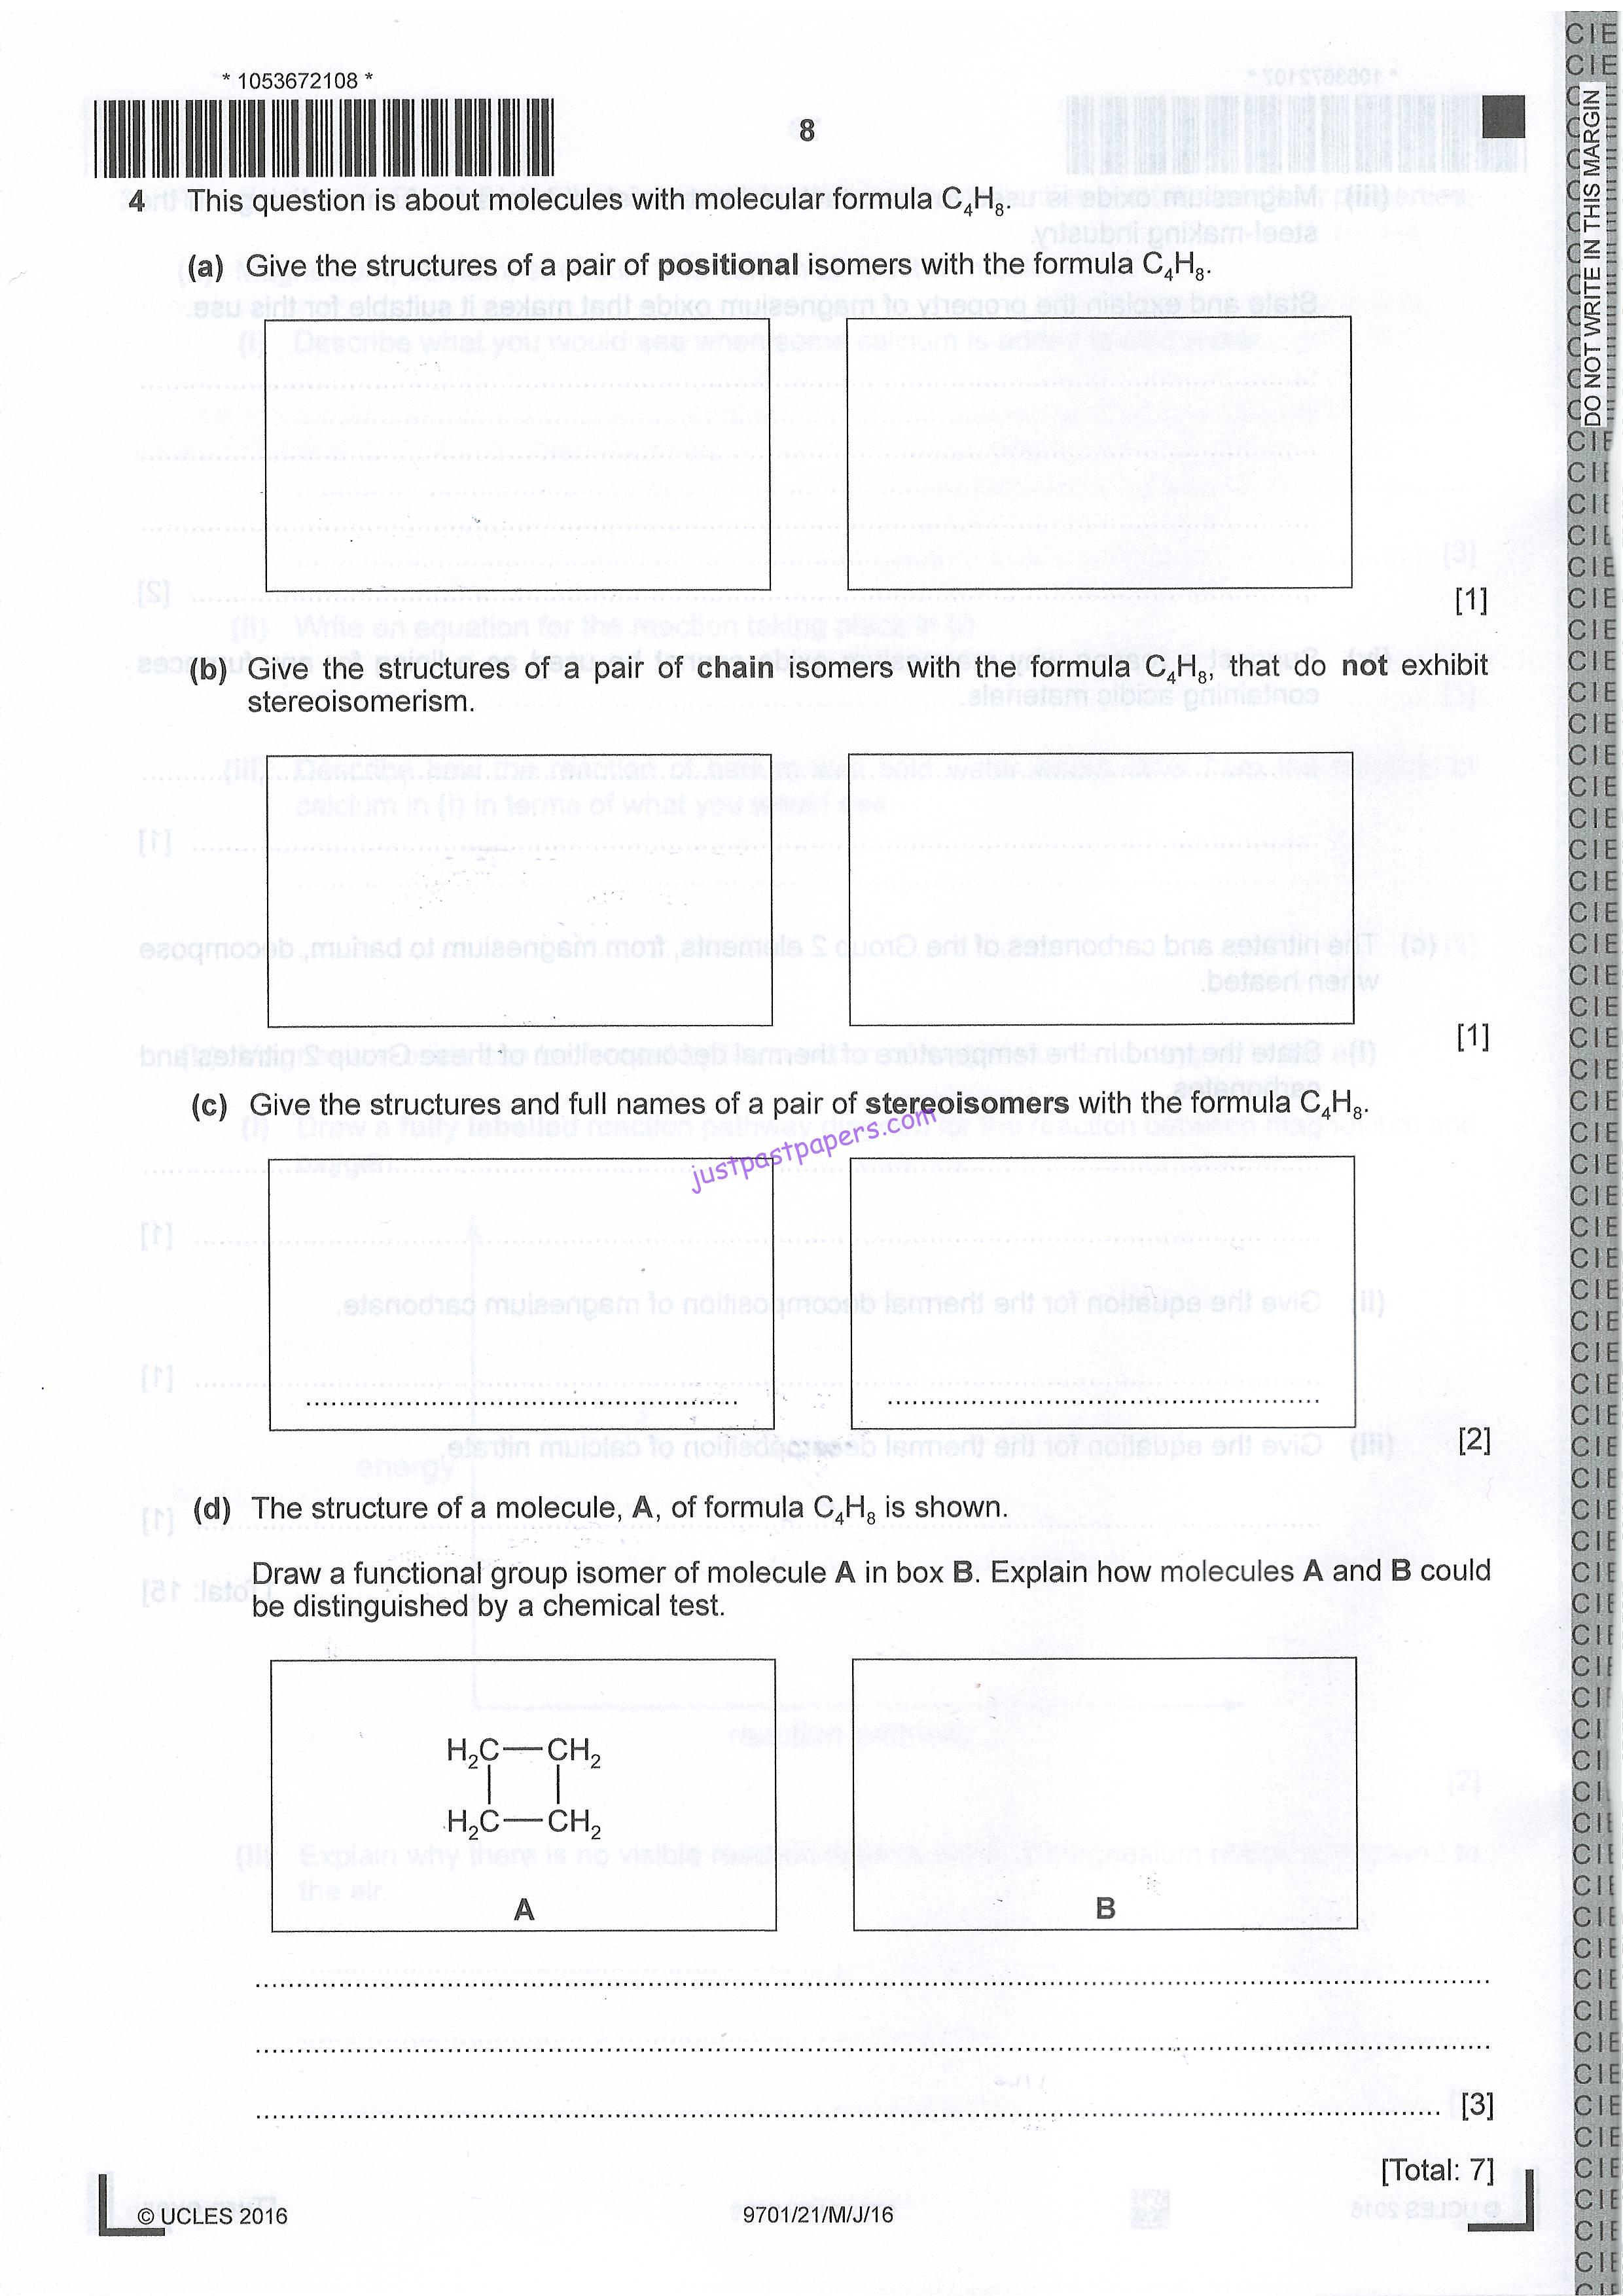 edexcel intermediate maths past papers ©2005 edexcel limited materials required for examination items included with question papers n23494_gce_core_maths_c3_adv_specimen_jun05qxd.